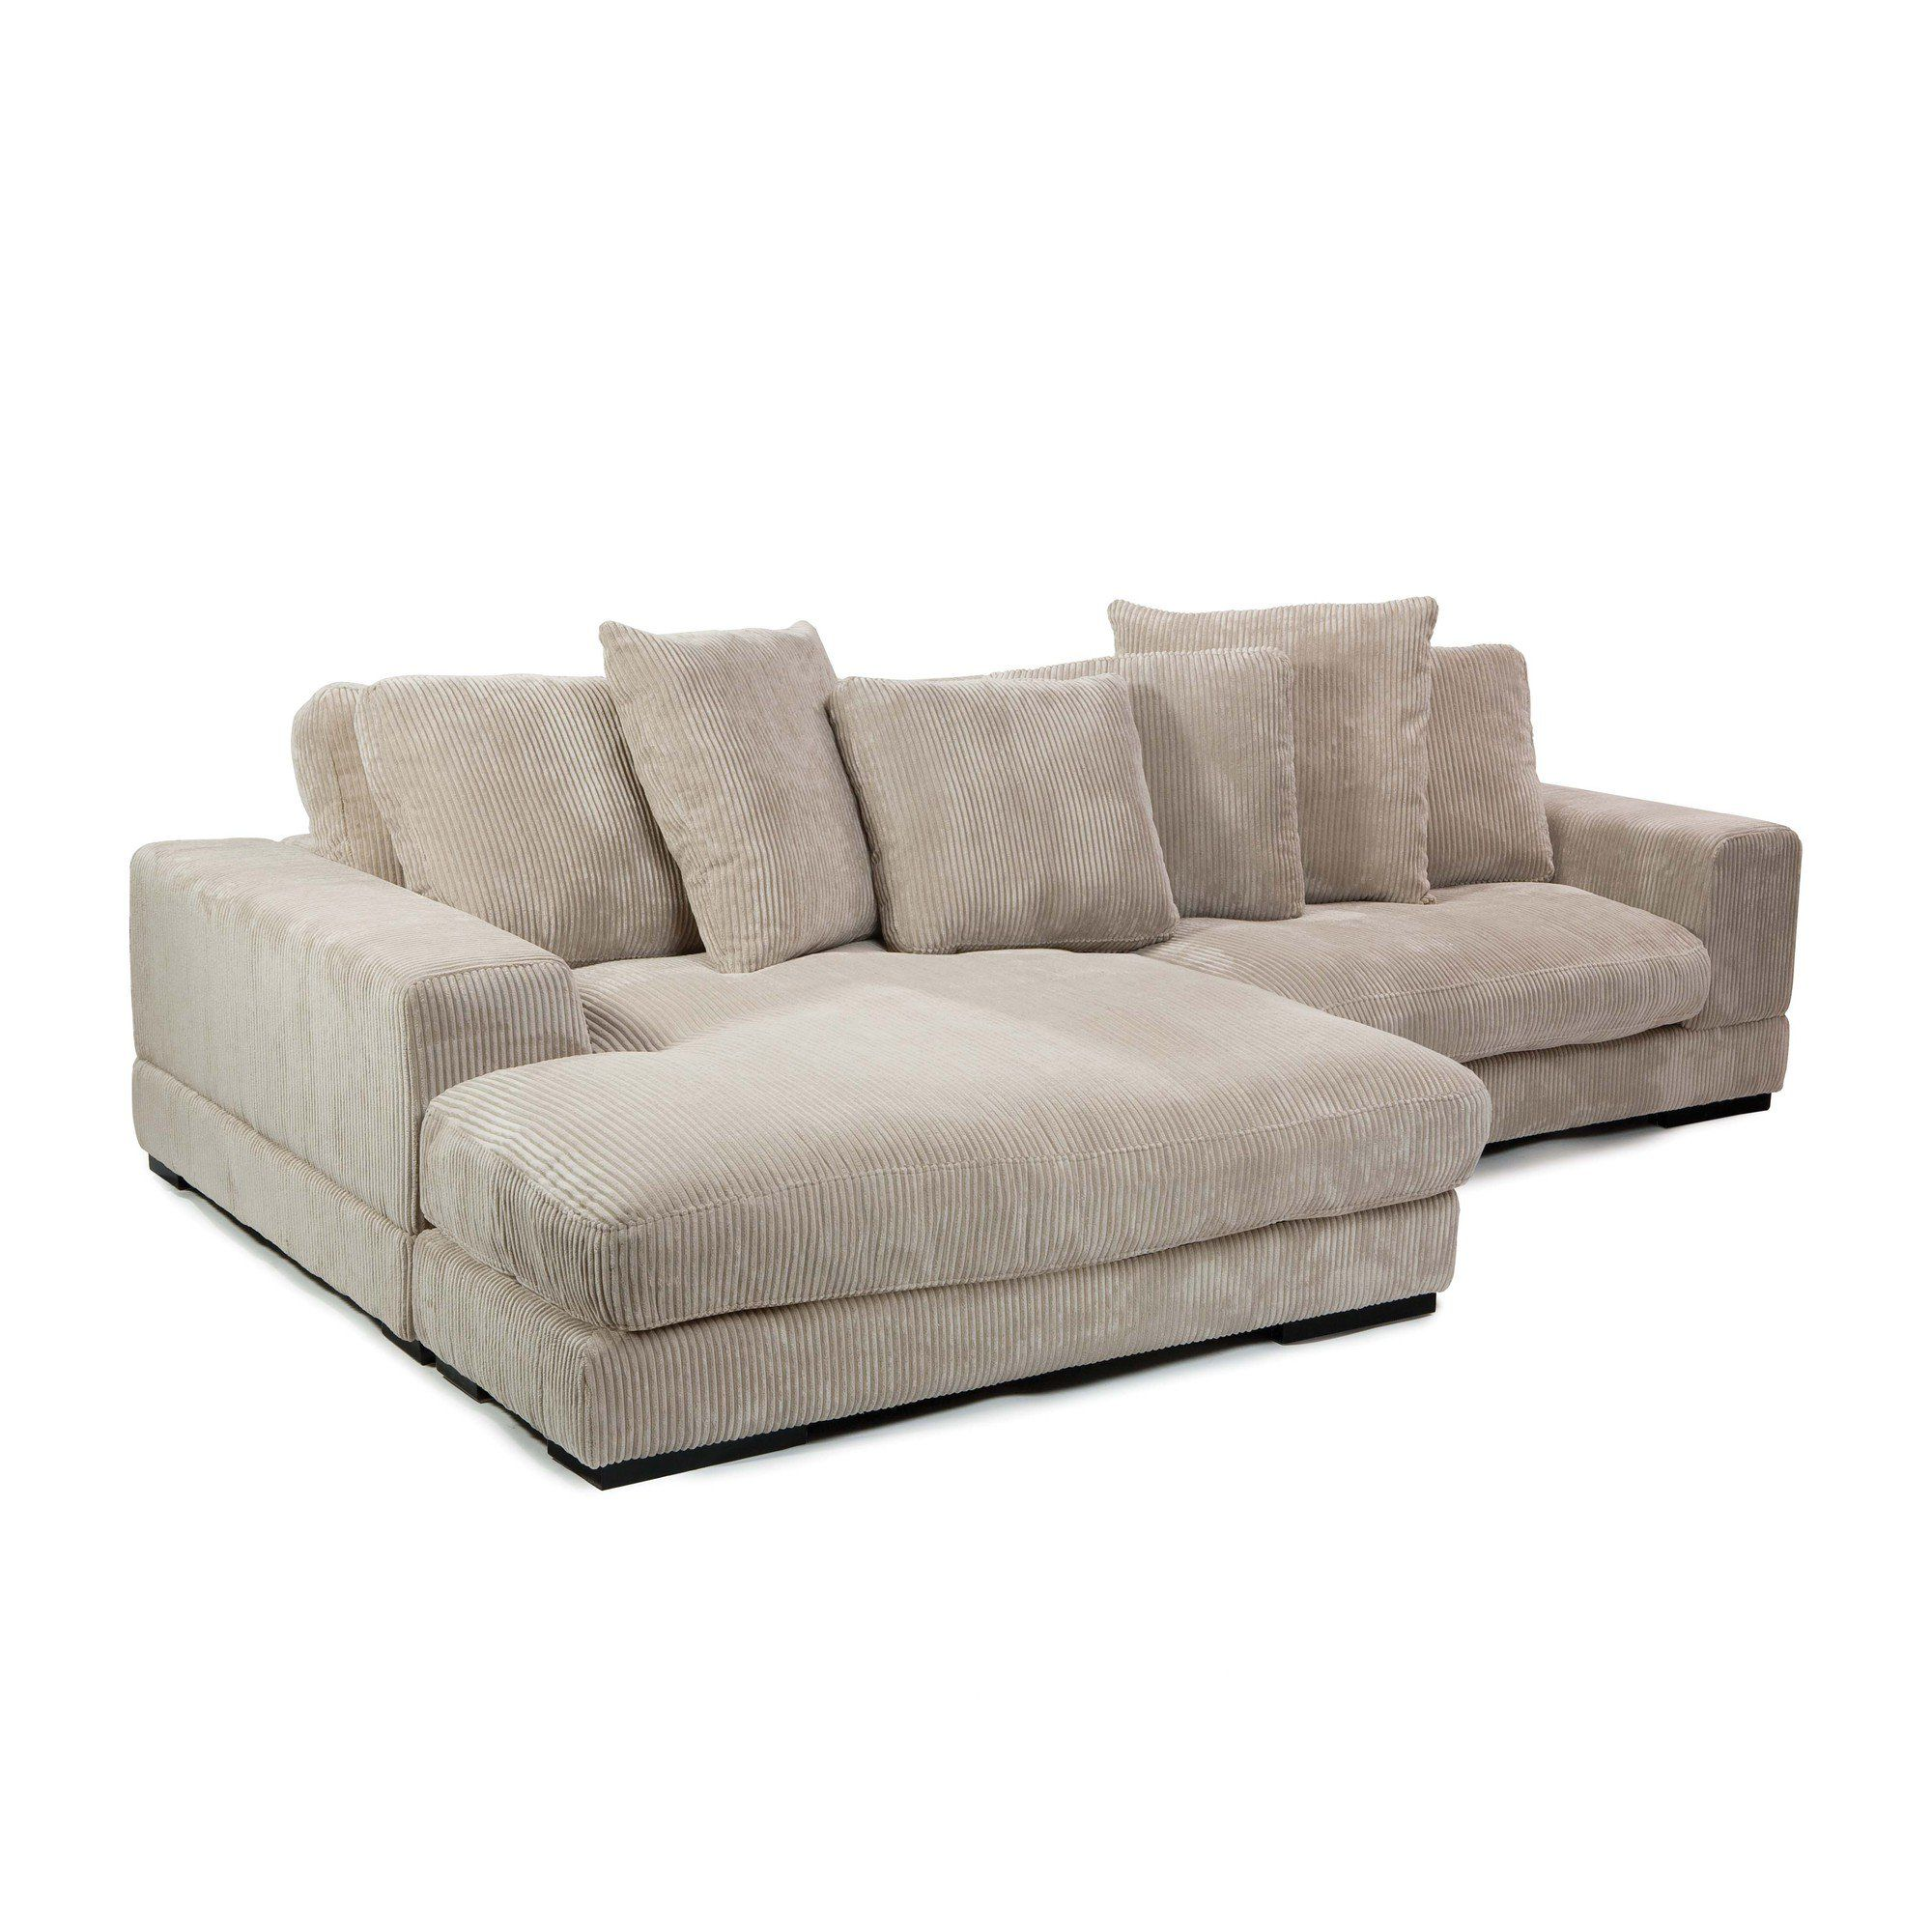 Moe's Home Collection Plunge Reversible Corduroy Sectional